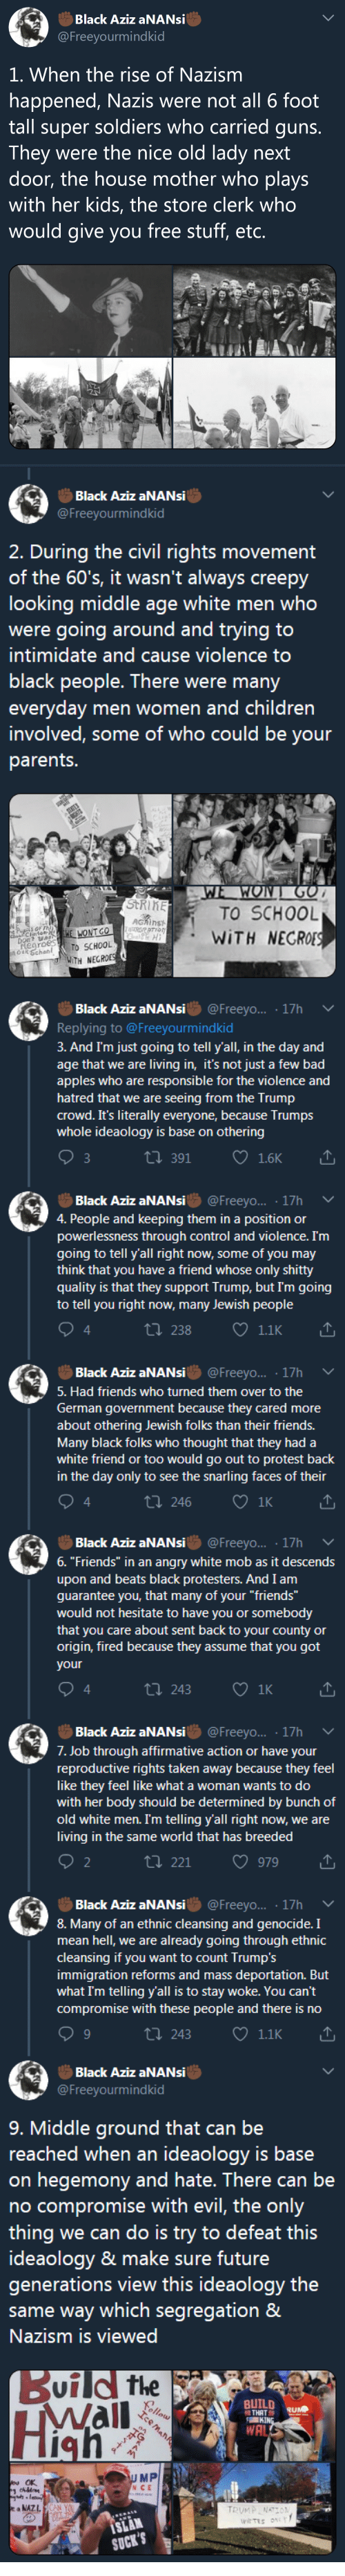 """Affirmative: Black Aziz aNANsi  @Freeyourmindkid  1. When the rise of Nazism  happened, Nazis were not all 6 foot  tall super soldiers who carried quns  They were the nice old lady next  door, the house mother who plays  with her kids, the store clerk who  would give you free stuff, etc.   Black Aziz aNANsi  @Freeyourmindkid  2. During the civil rights movement  of the 60's, it wasn't always creepy  looking middle age white men who  were going around and trying to  intimidate and cause violence to  black people. There were many  everyday men women and children  involved, some of who could be your  parents.  TO SCHOOL  """" WİTH NEGRO  AGKins  oChTo SCHOOL  WTH NEGROES  egroe   Black Aziz aNANsi@Freeyo... 17h  Replying to @Freeyourmindkid  3. And I'm just going to tell y'all, in the day and  age that we are living in, it's not just a few bad  apples who are responsible for the violence and  hatred that we are seeing from the Trump  crowd. It's literally everyone, because Trumps  whole ideaology is base on othering  ロ391  Black Aziz aNANsi@Freeyo... 17h  4. People and keeping them in a position or  powerlessness through control and violence. I'm  going to tell y'all right now, some of you may  think that you have a friend whose only shitty  quality is that they support Trump, but Im going  to tell you right now, many Jewish people  t1 238  1.1K  4  Black Aziz aNANsi@Freeyo... 17h  5. Had friends who turned them over to the  German government because they cared more  about othering Jewish folks than their friends.  Many black folks who thought that they had a  white friend or too would go out to protest back  in the day only to see the snarling faces of thei  4  t 246  1K   Black Aziz aNANsi@Freeyo... 17h  6. """"Friends"""" in an angry white mob as it descends  upon and beats black protesters. And I am  guarantee you, that many of your """"friends""""  would not hesitate to have you or somebody  that you care about sent back to your county or  origin, fired because they assume that """